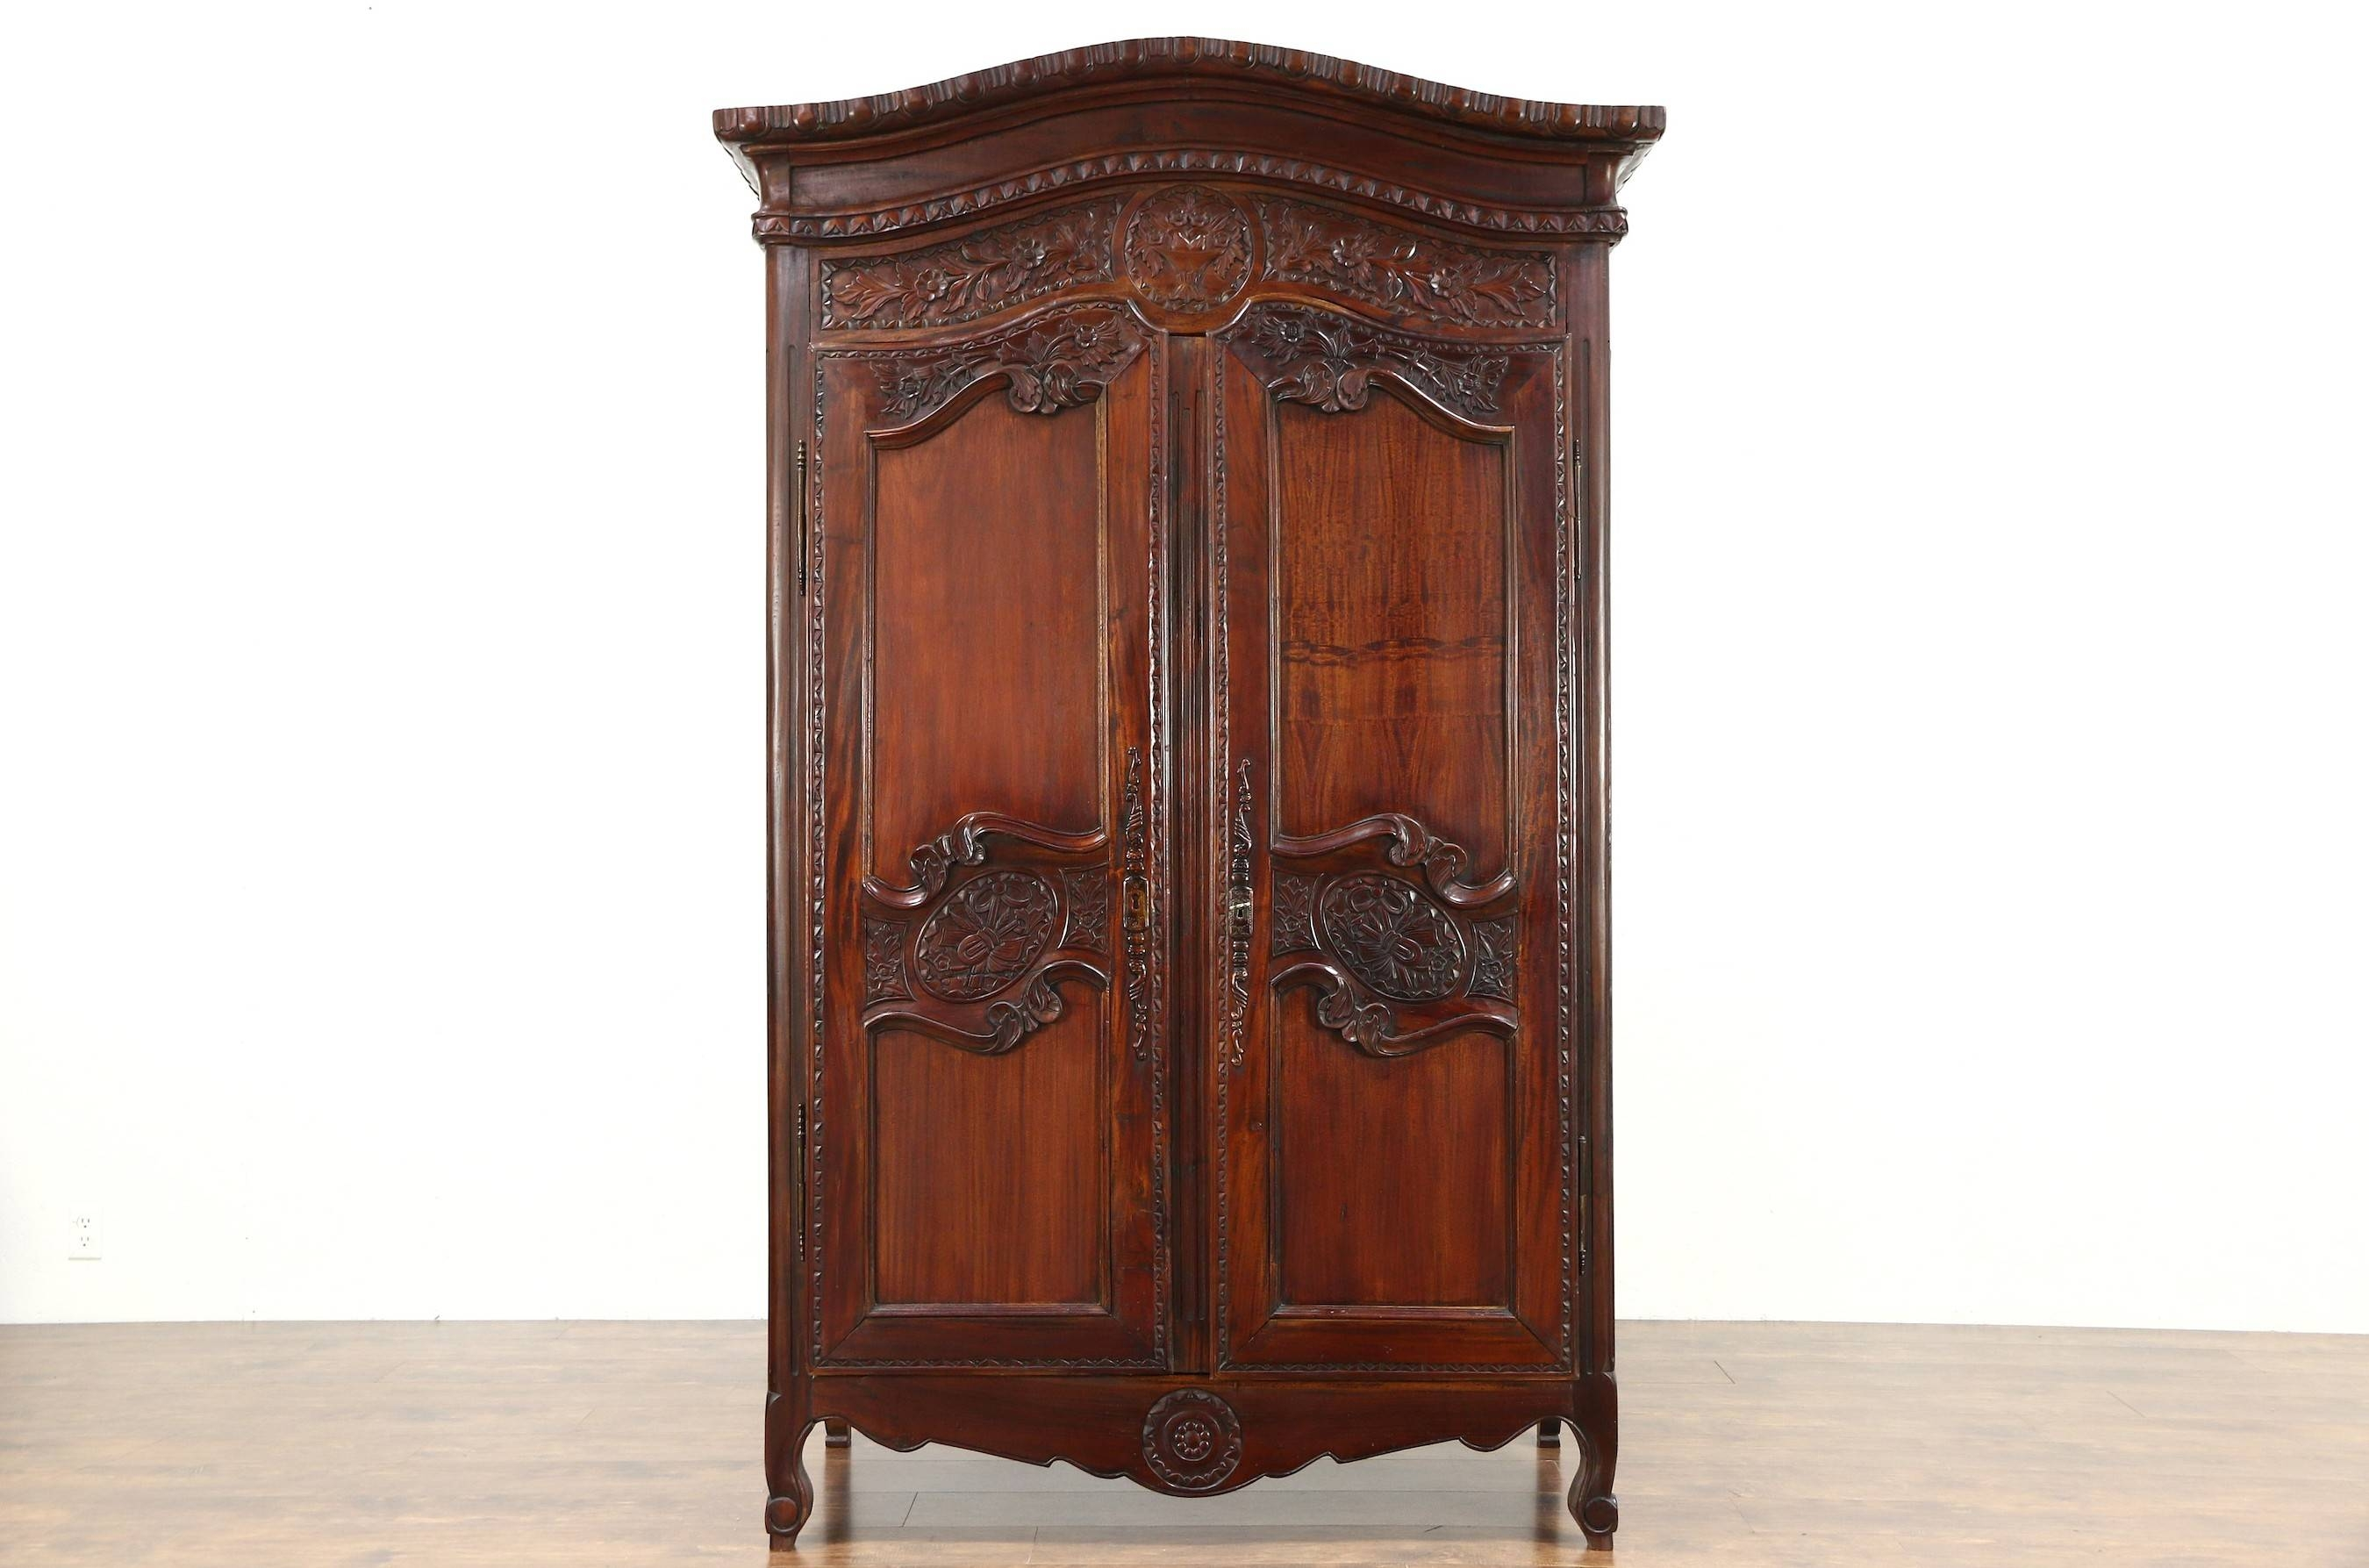 Sold - French Style Hand Carved Mahogany Vintage Armoire, Wardrobe within Vintage Style Wardrobes (Image 10 of 15)